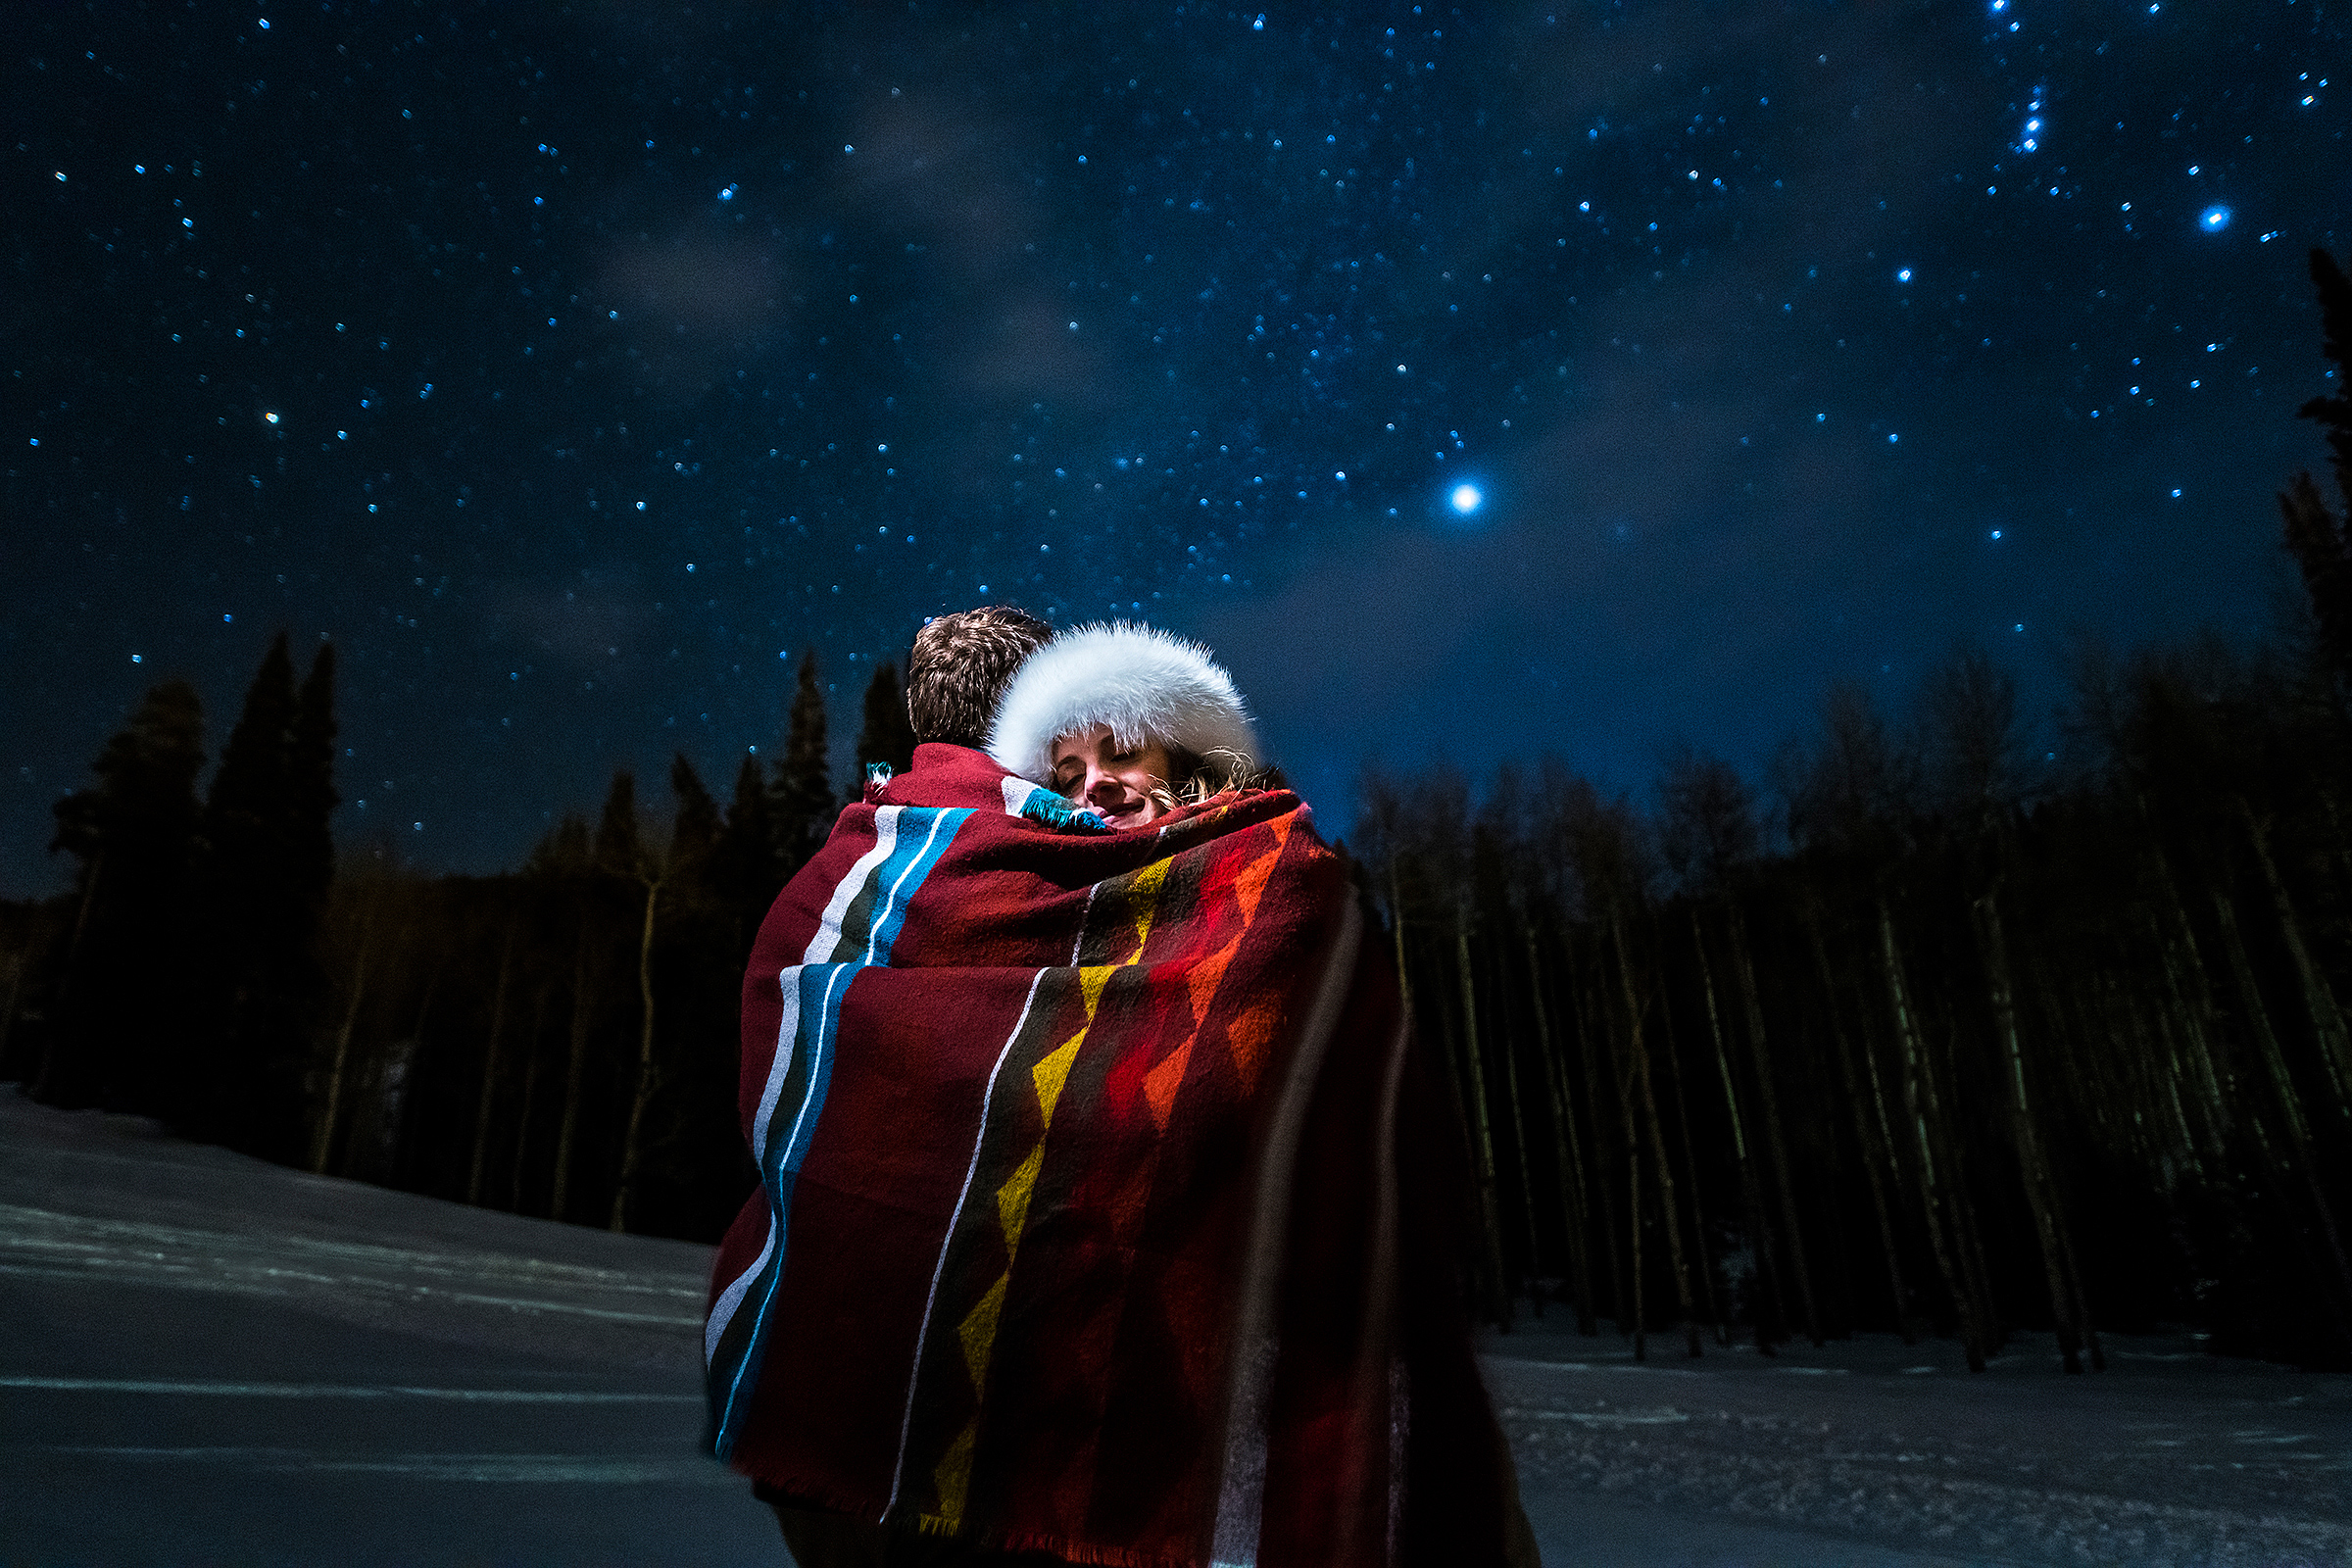 couple-wrapped-in-blanked-under-northern-lights-sky-j-la-plante-photo